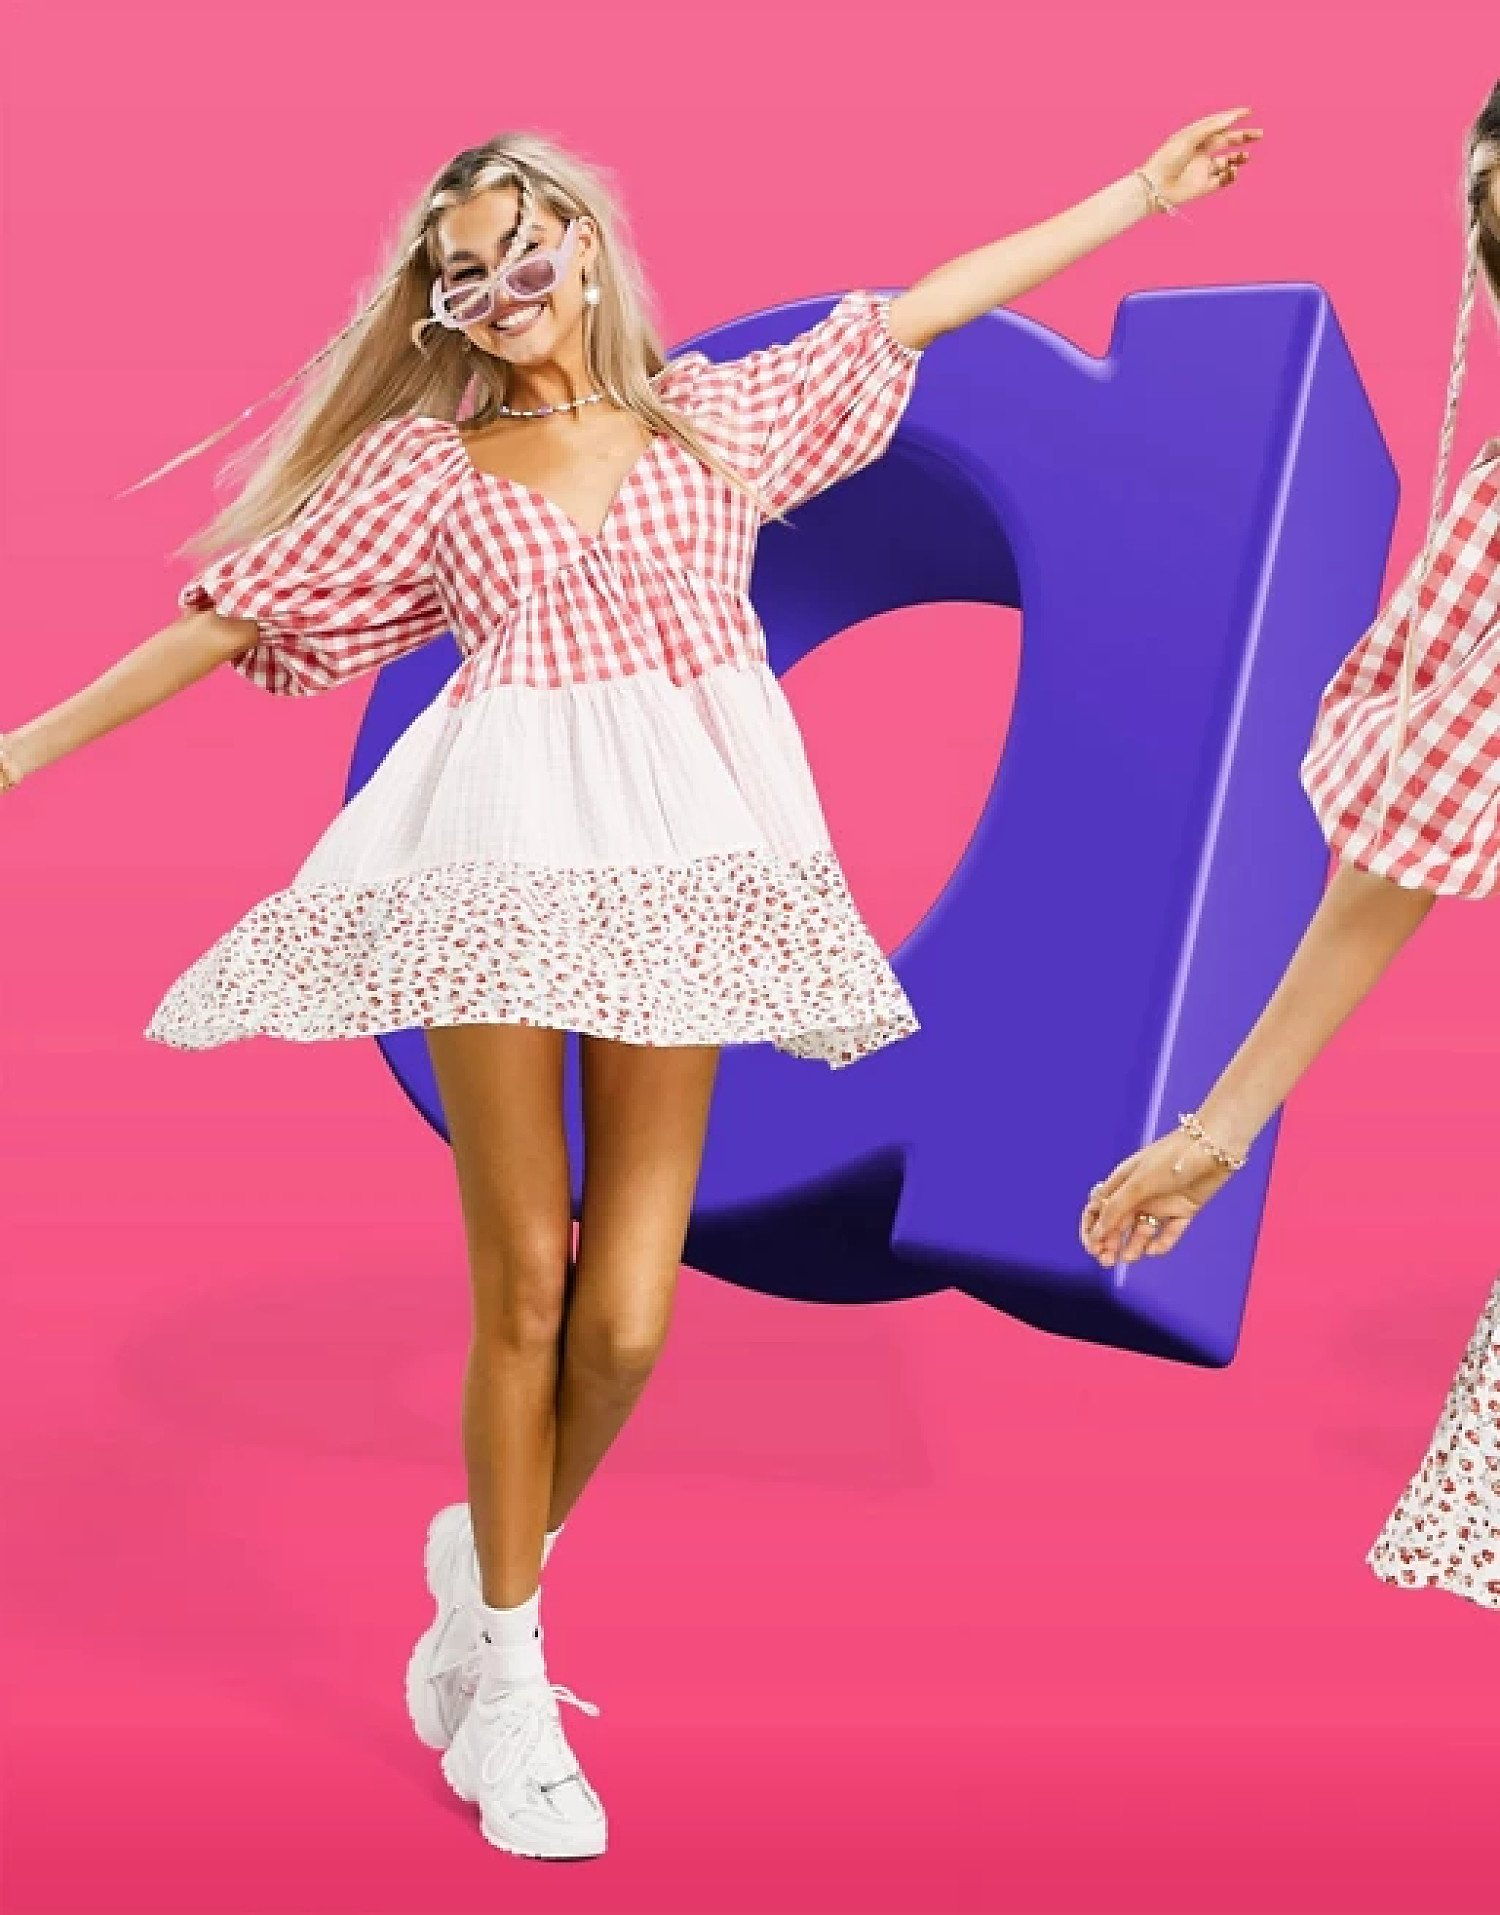 ASOS DESIGN mixed gingham and floral tiered mini smock dress - £25.00!